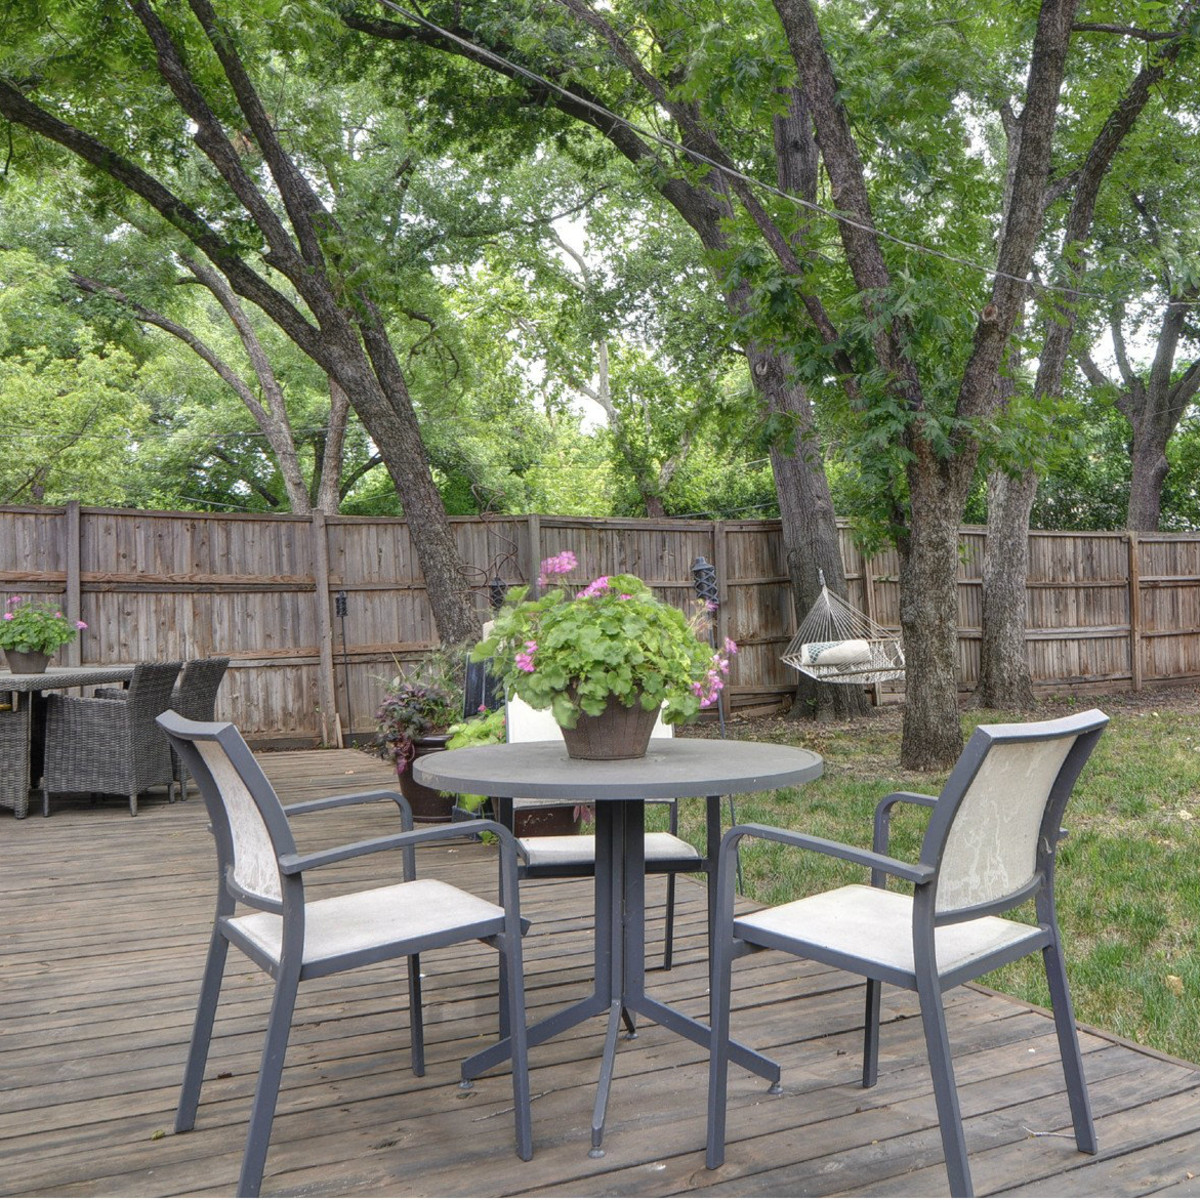 9870 Mixon Dr. for sale in Dallas